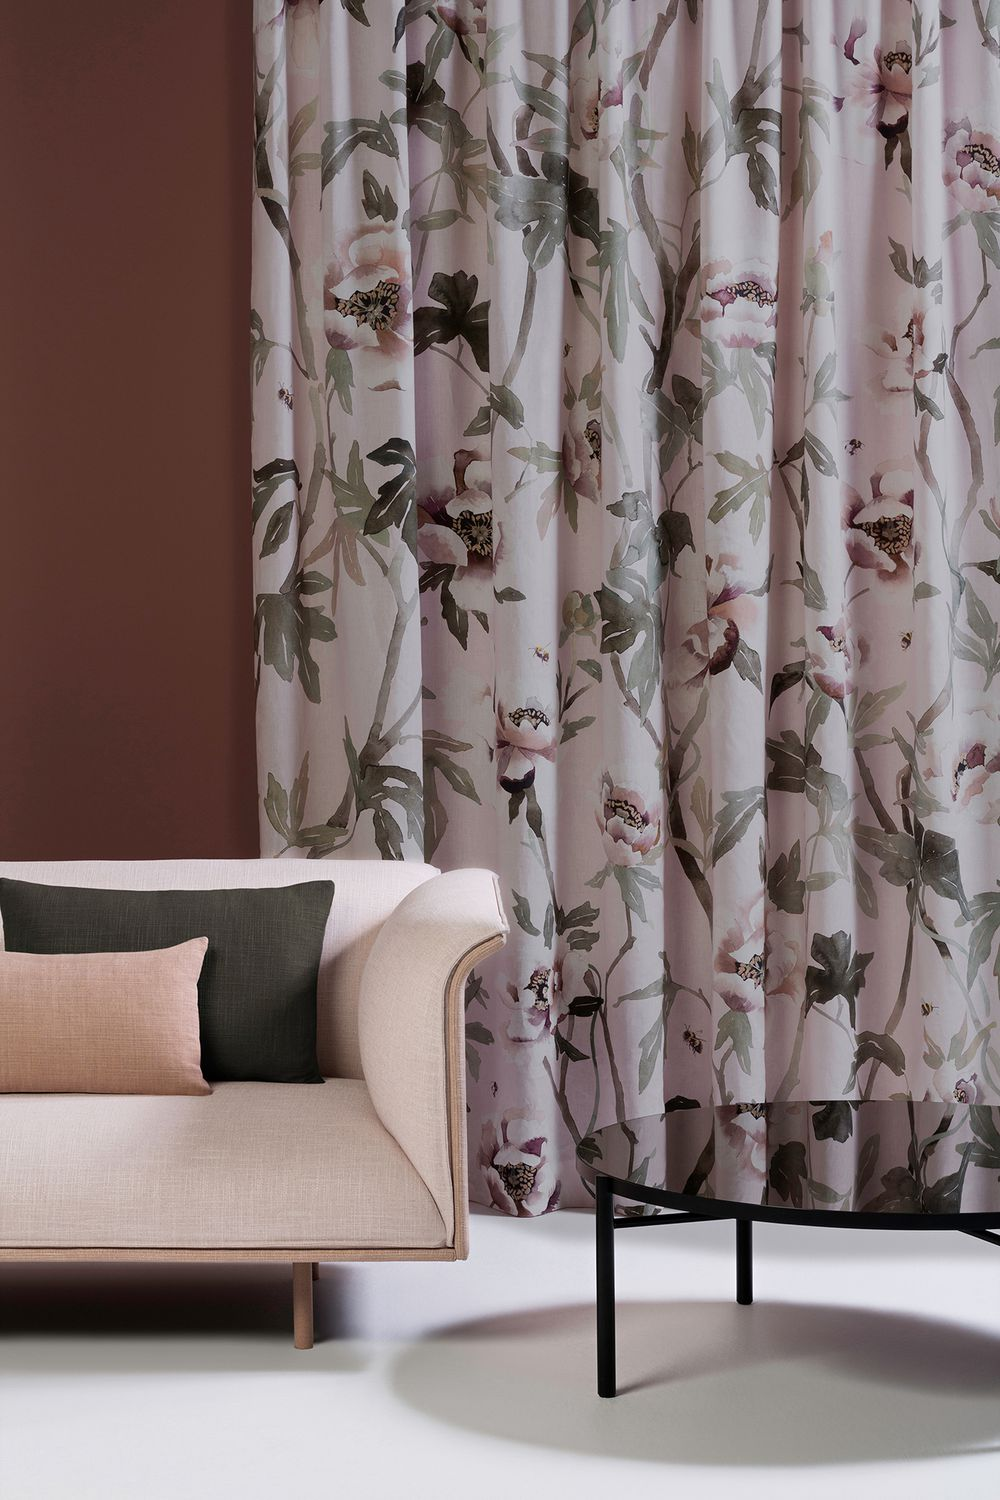 Photo of the fabric Peonia Parchment in situ by Mokum. Use for Drapery, Accessory. Style of Animals And Birds, Decorative, Floral And Botannical, Pattern